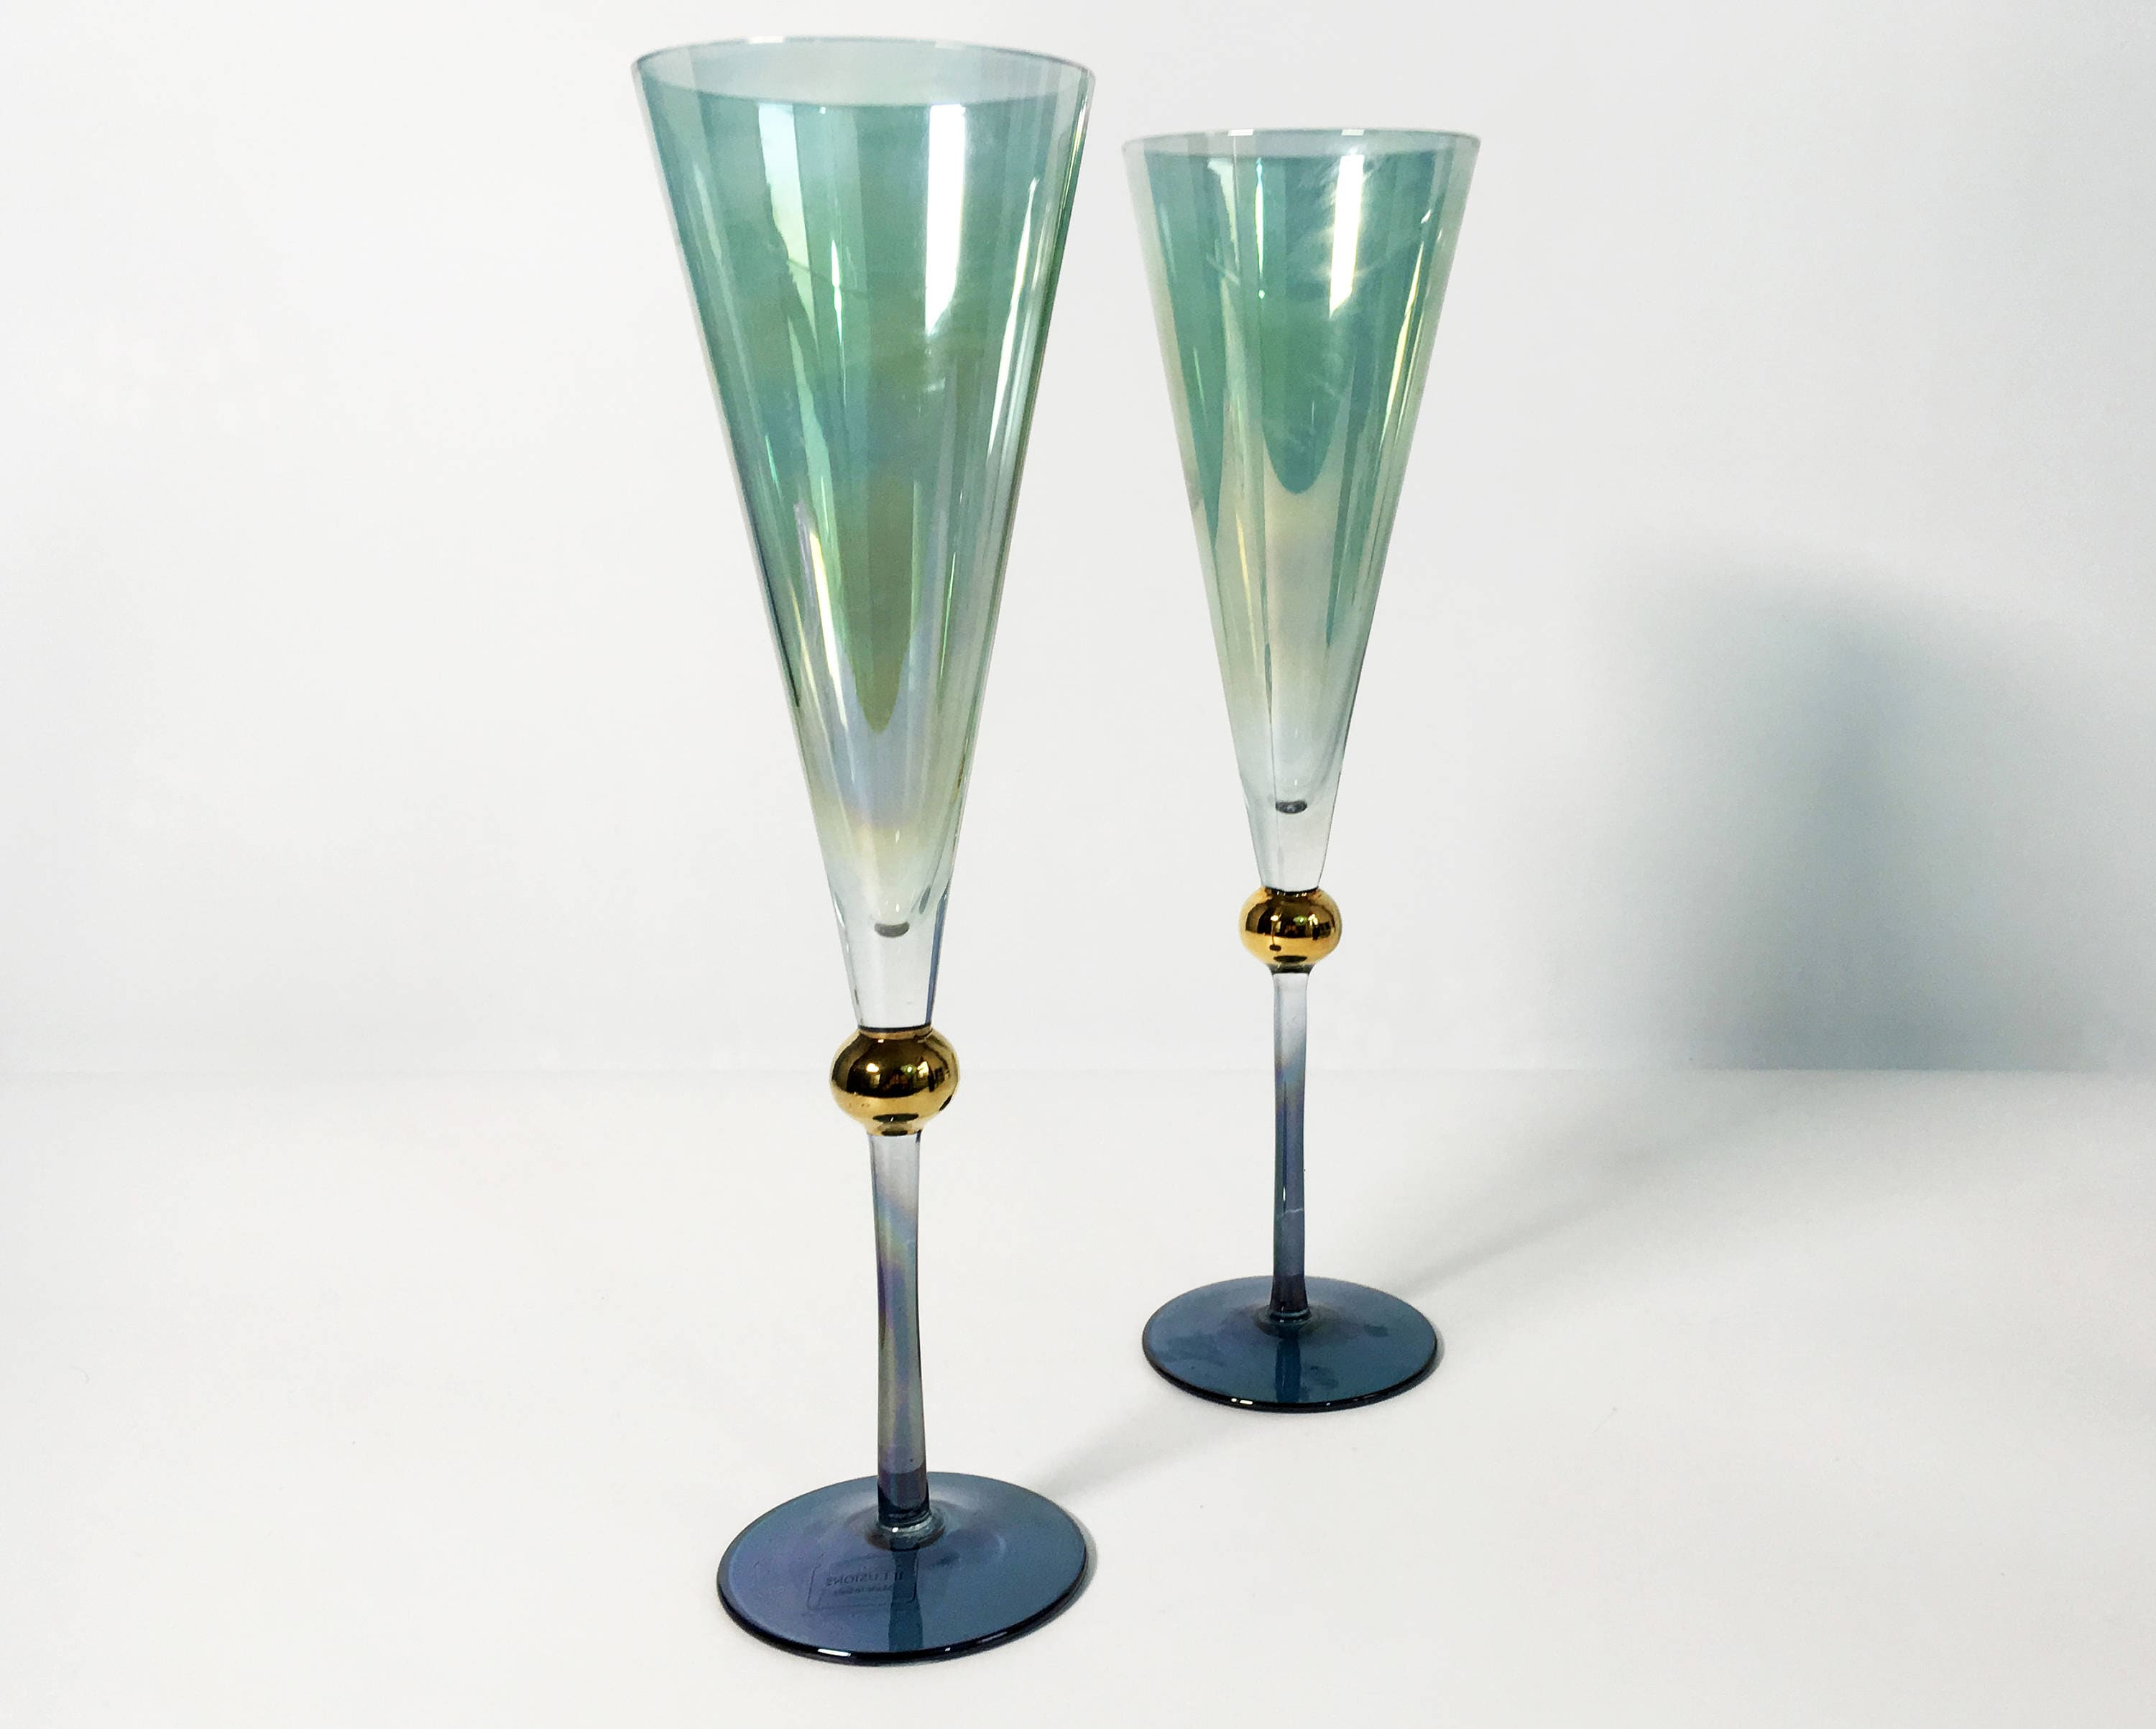 2 vintage champagne flutes glasses pair tall sea foam green blue